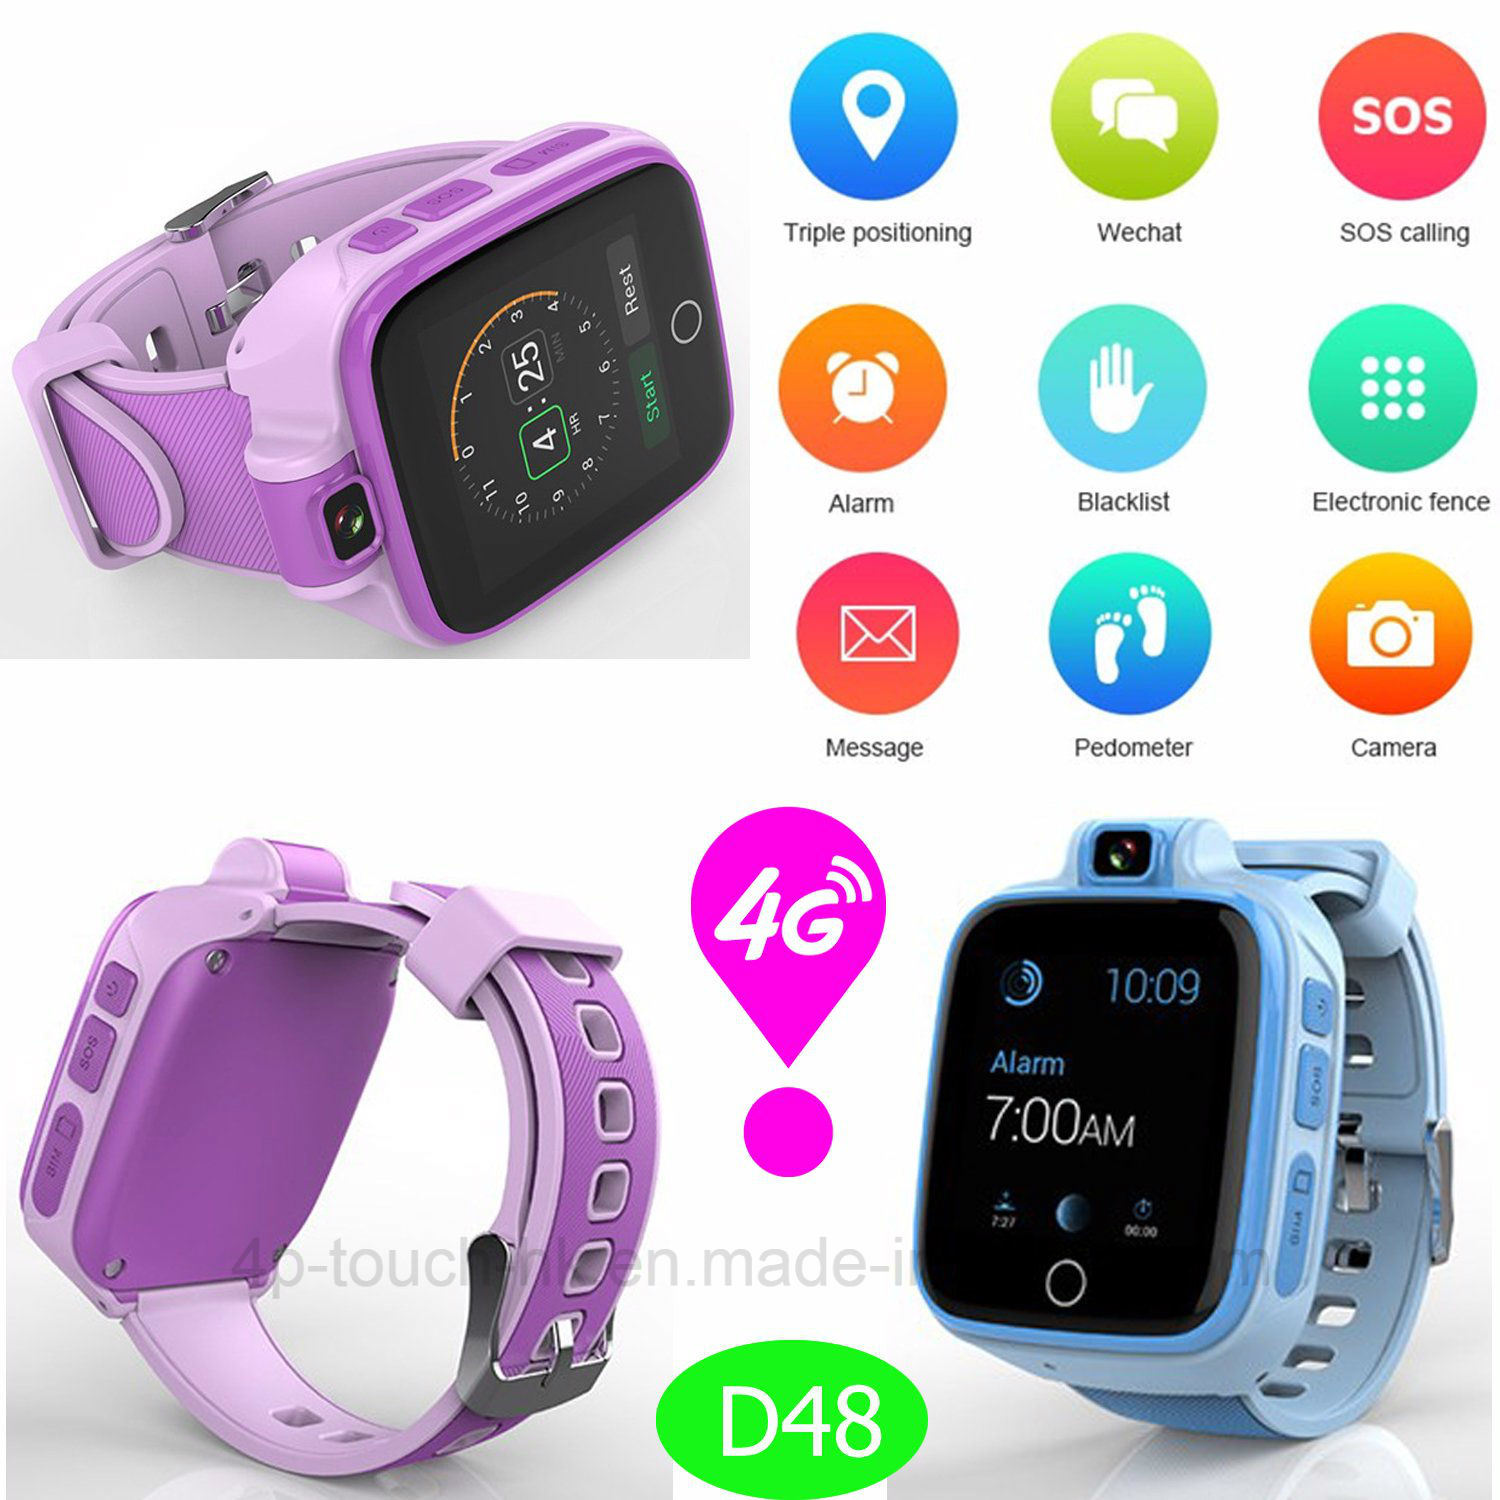 3328d4372256 China 4G Lte Kids Adults GPS Tracker Watch with Whatsapp Video Call D48 -  China GPS Tracker